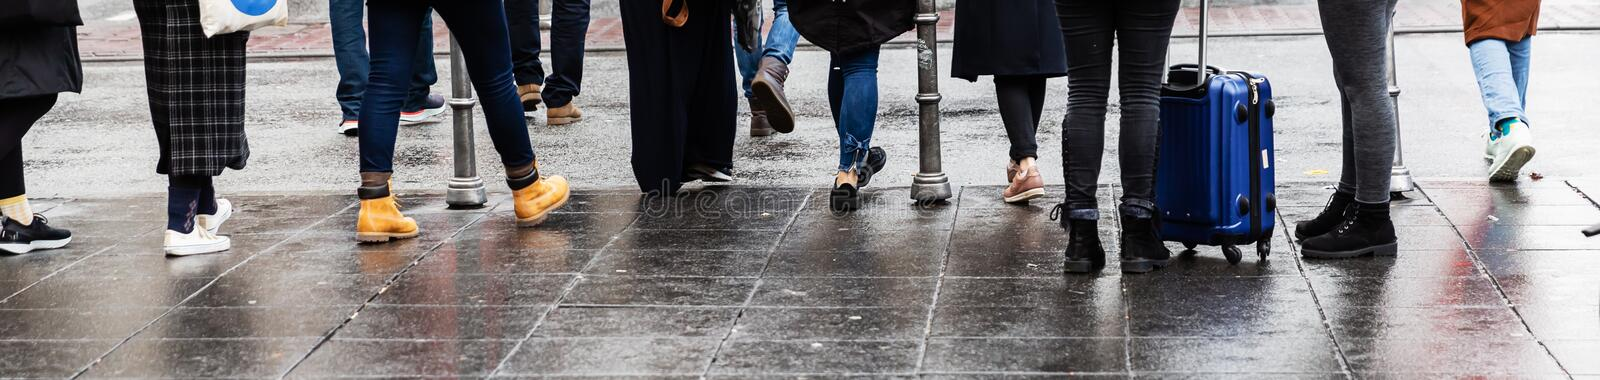 Legs of a crowd of people standing at the pedestrian crossing royalty free stock photography